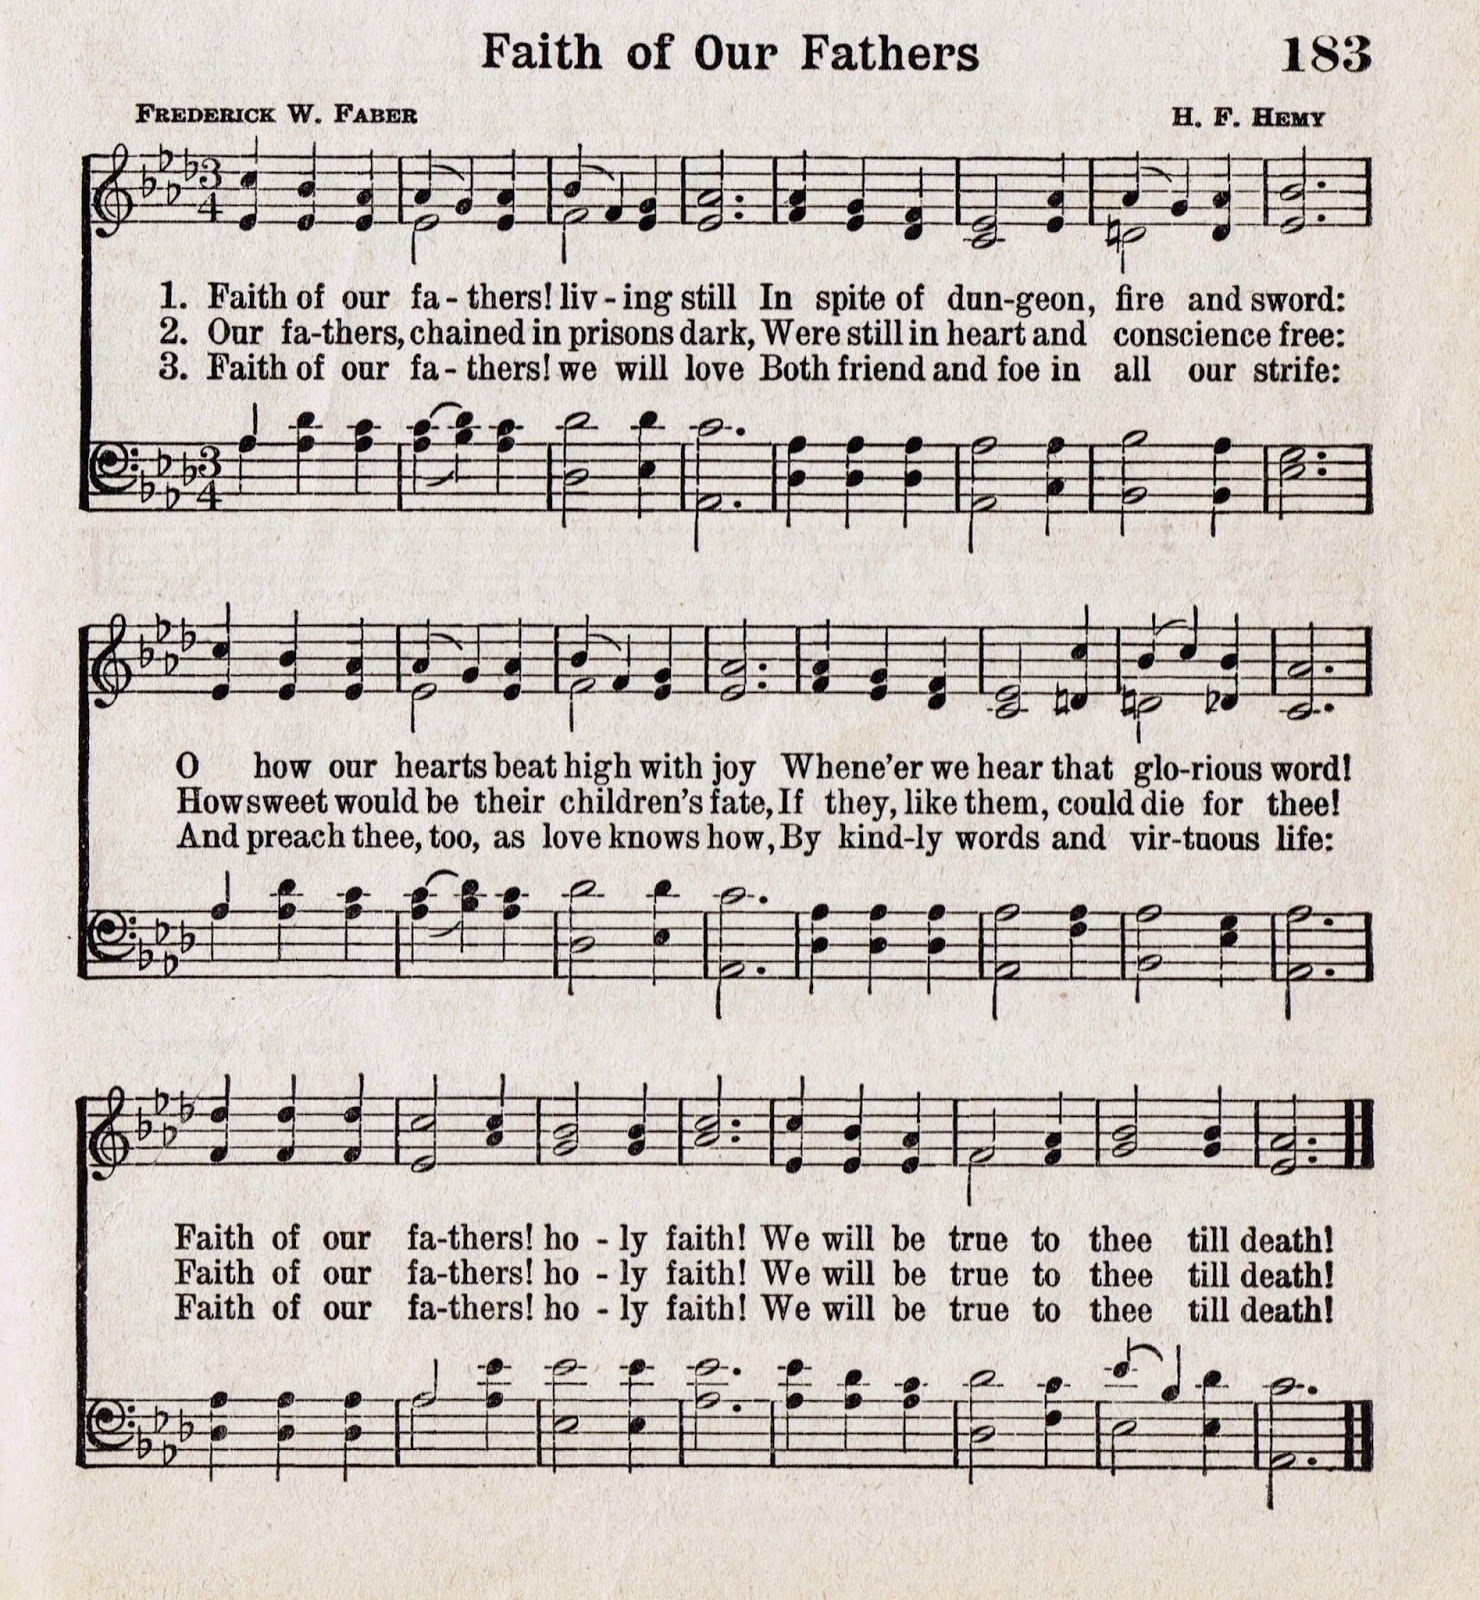 Printable Antique Hymn Book Page - Faith of Our Fathers via http://knickoftimeinteriors.blogspot.com/